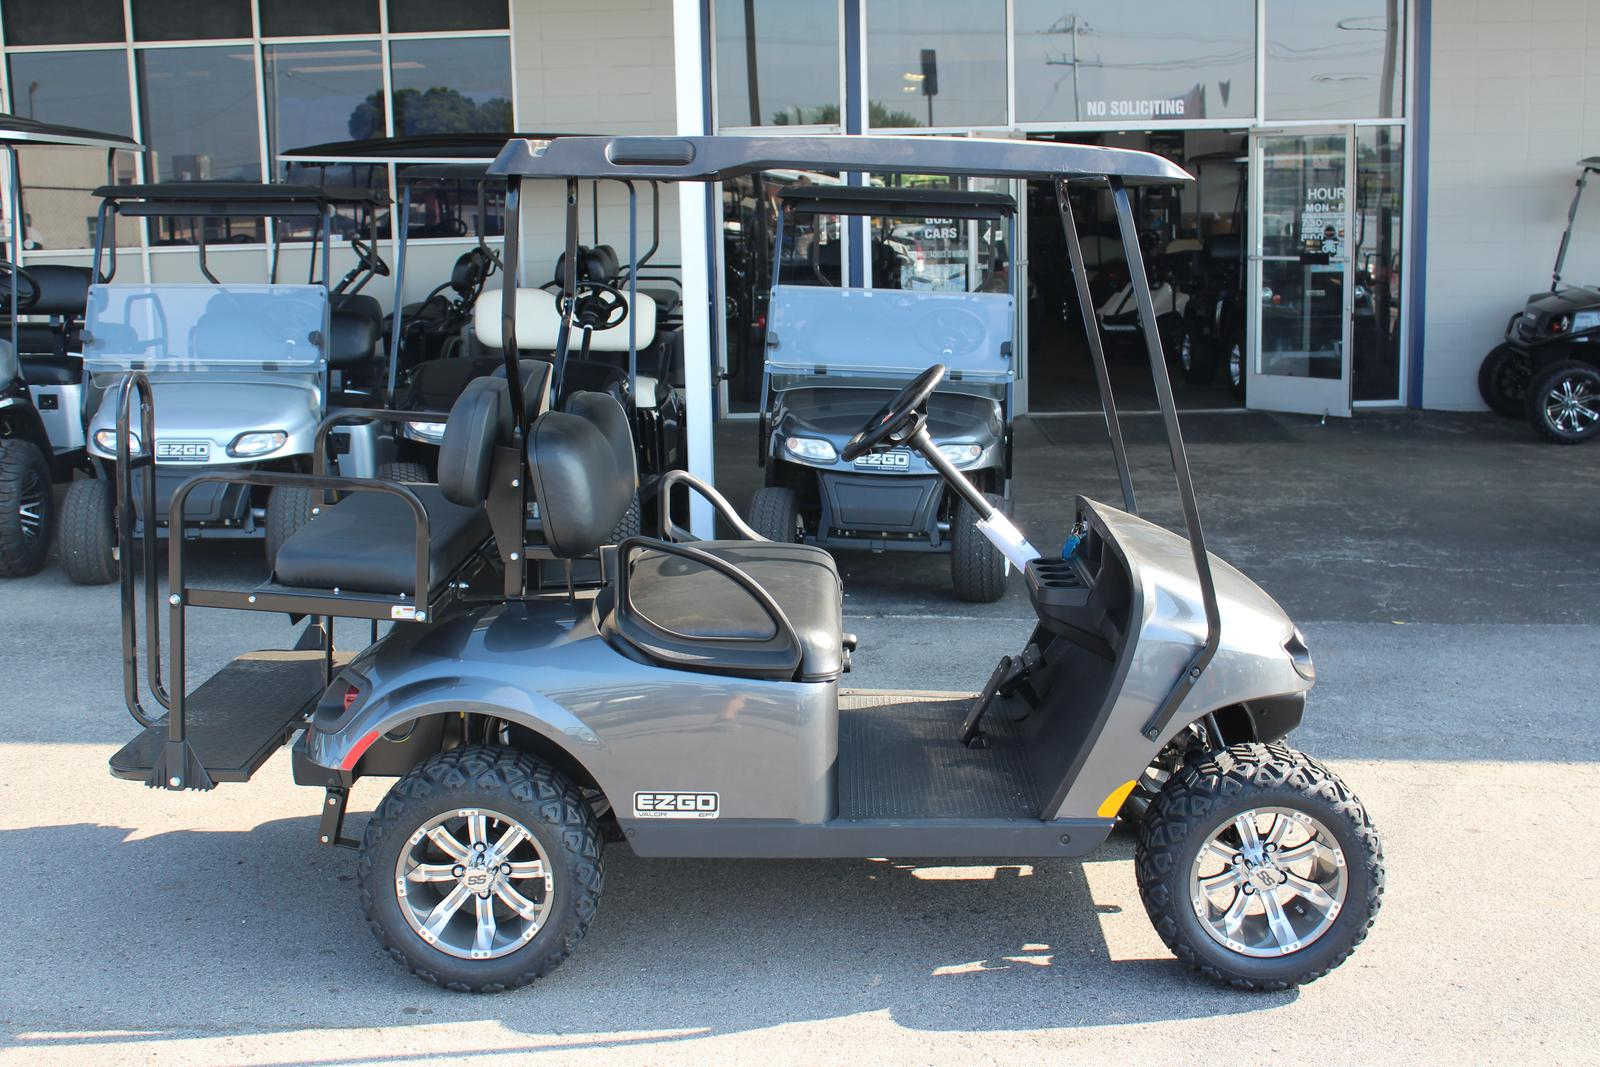 Inventory Boswell's Golf Cars Nashville, TN (615) 242-0214